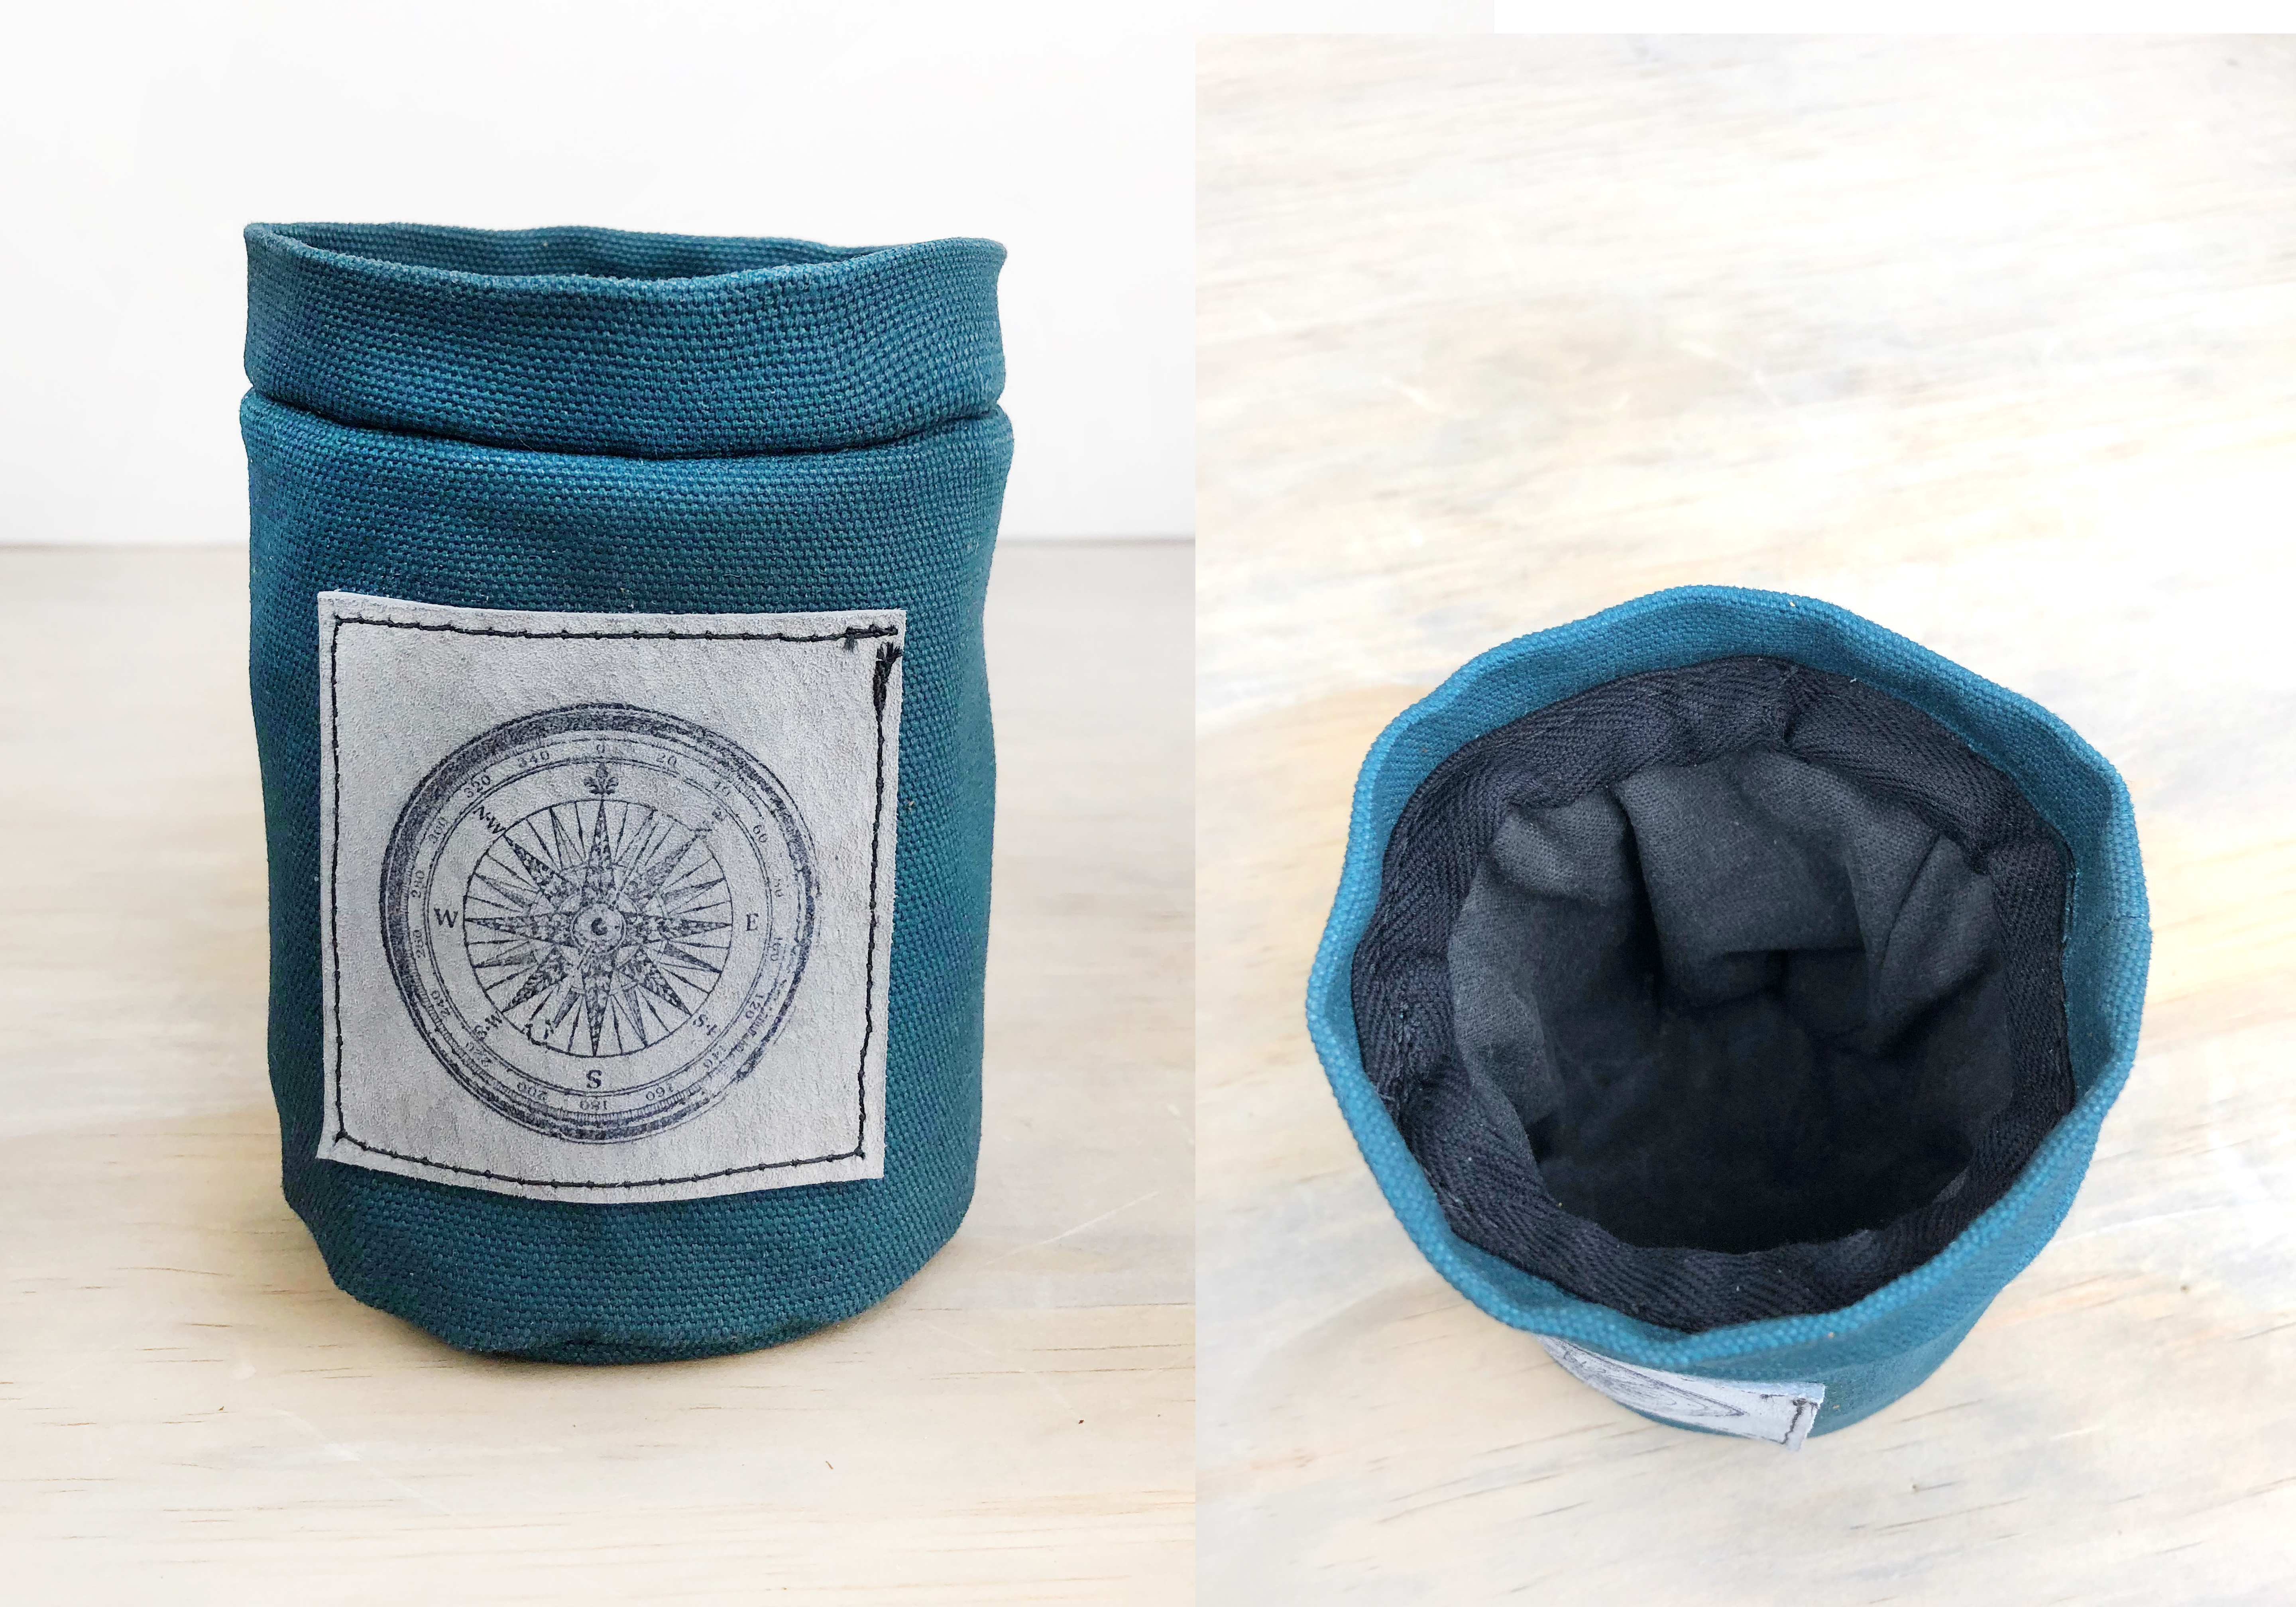 Waxed Canvas Drink Koozie Holder Wool Lined Can Bottle Teal Black Olive Cozie Gift Leather